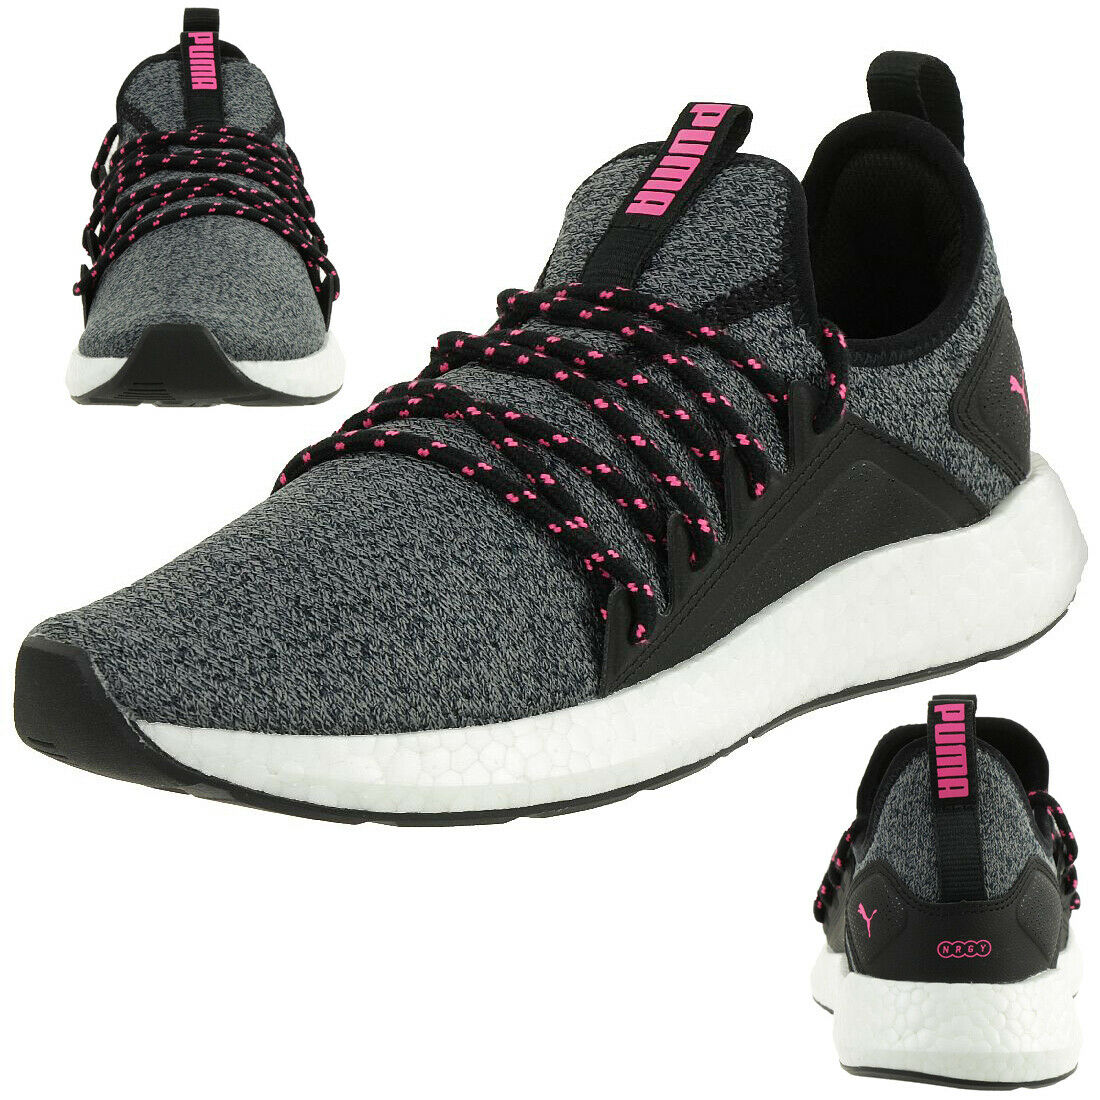 Puma Nrgy Neko Knit Wns Ladies Fitness Trainers Black Pink 191477 01